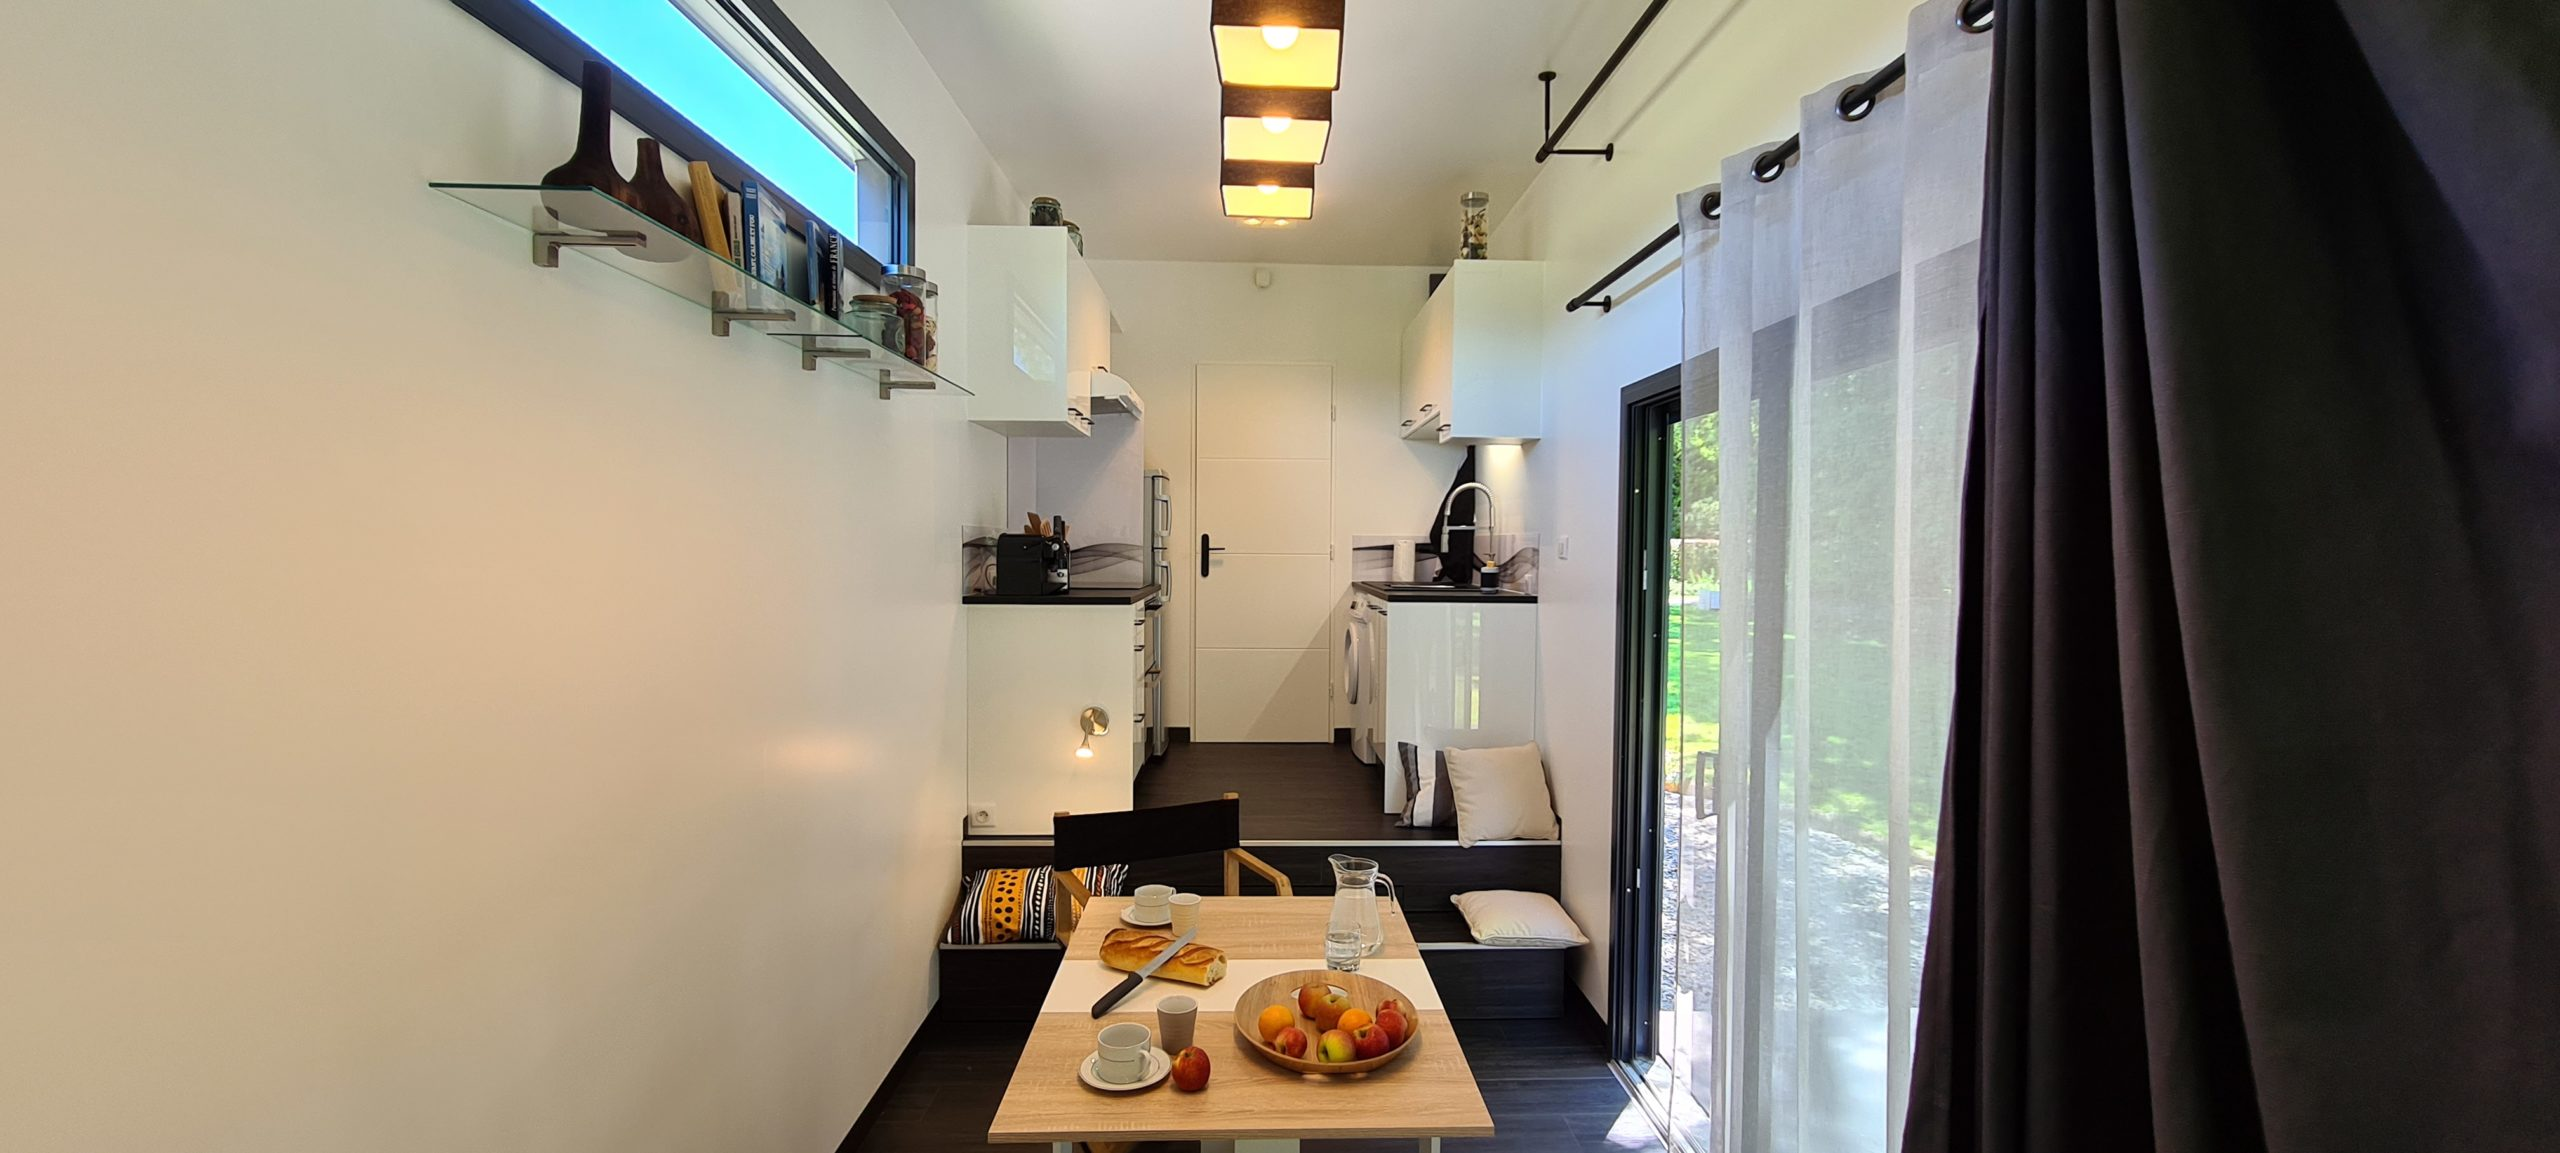 Tiny House Quartier Durable